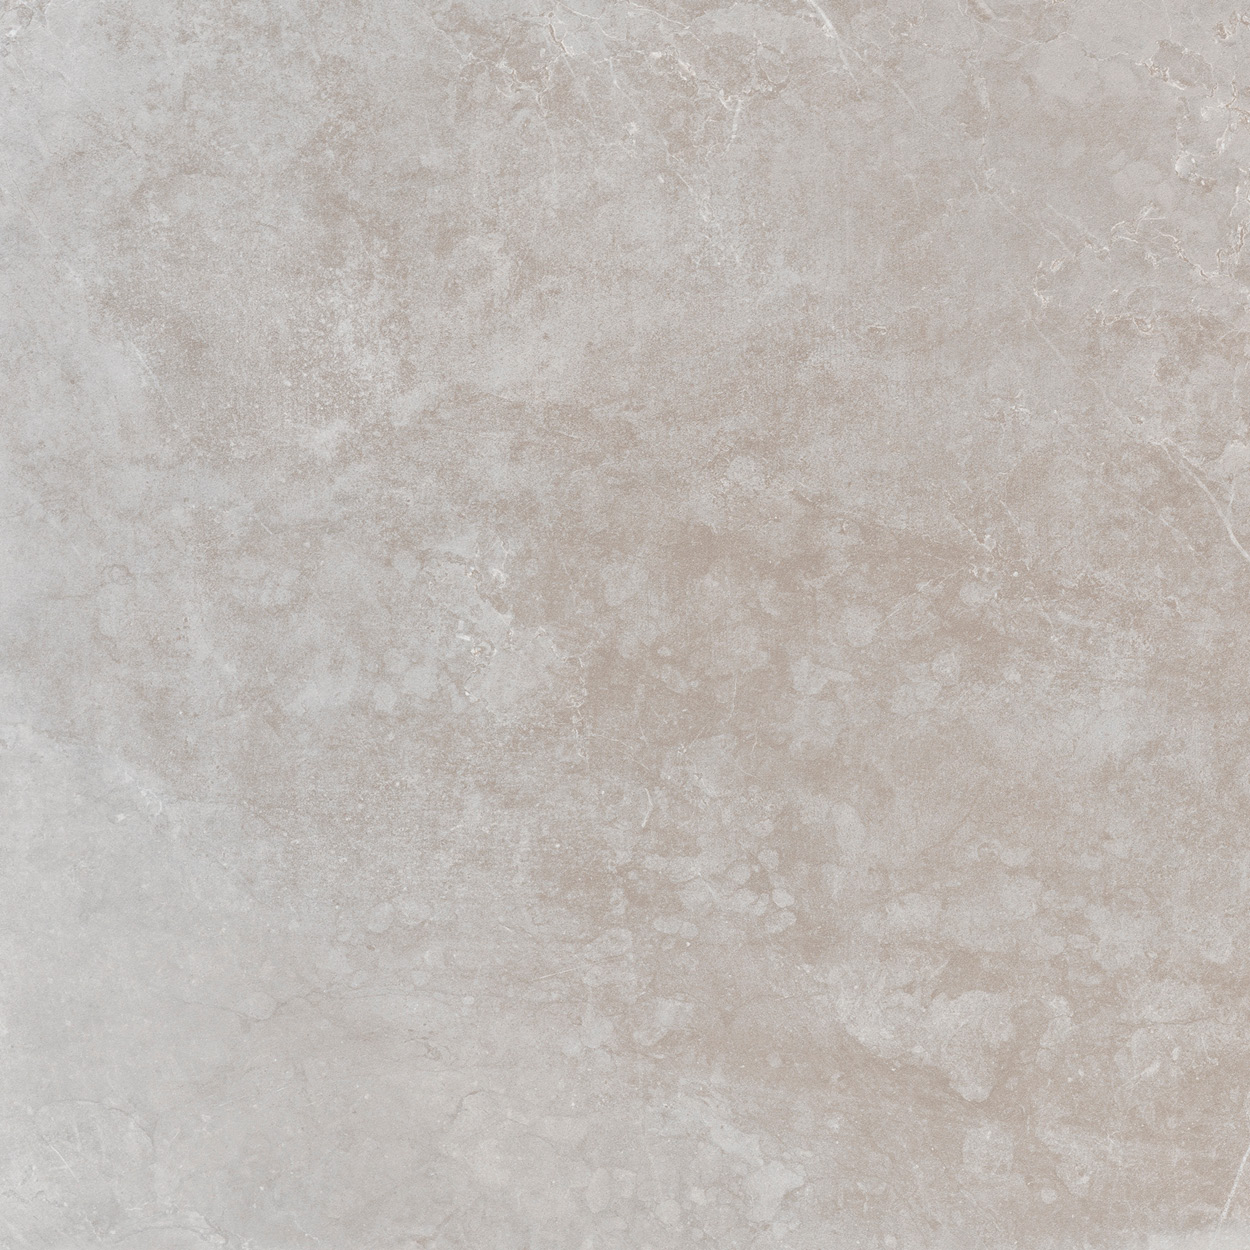 32 X 32 Evo Stone Mist Honed finished Rectified Porcelain Tile (SPECIAL ORDER ONLY)